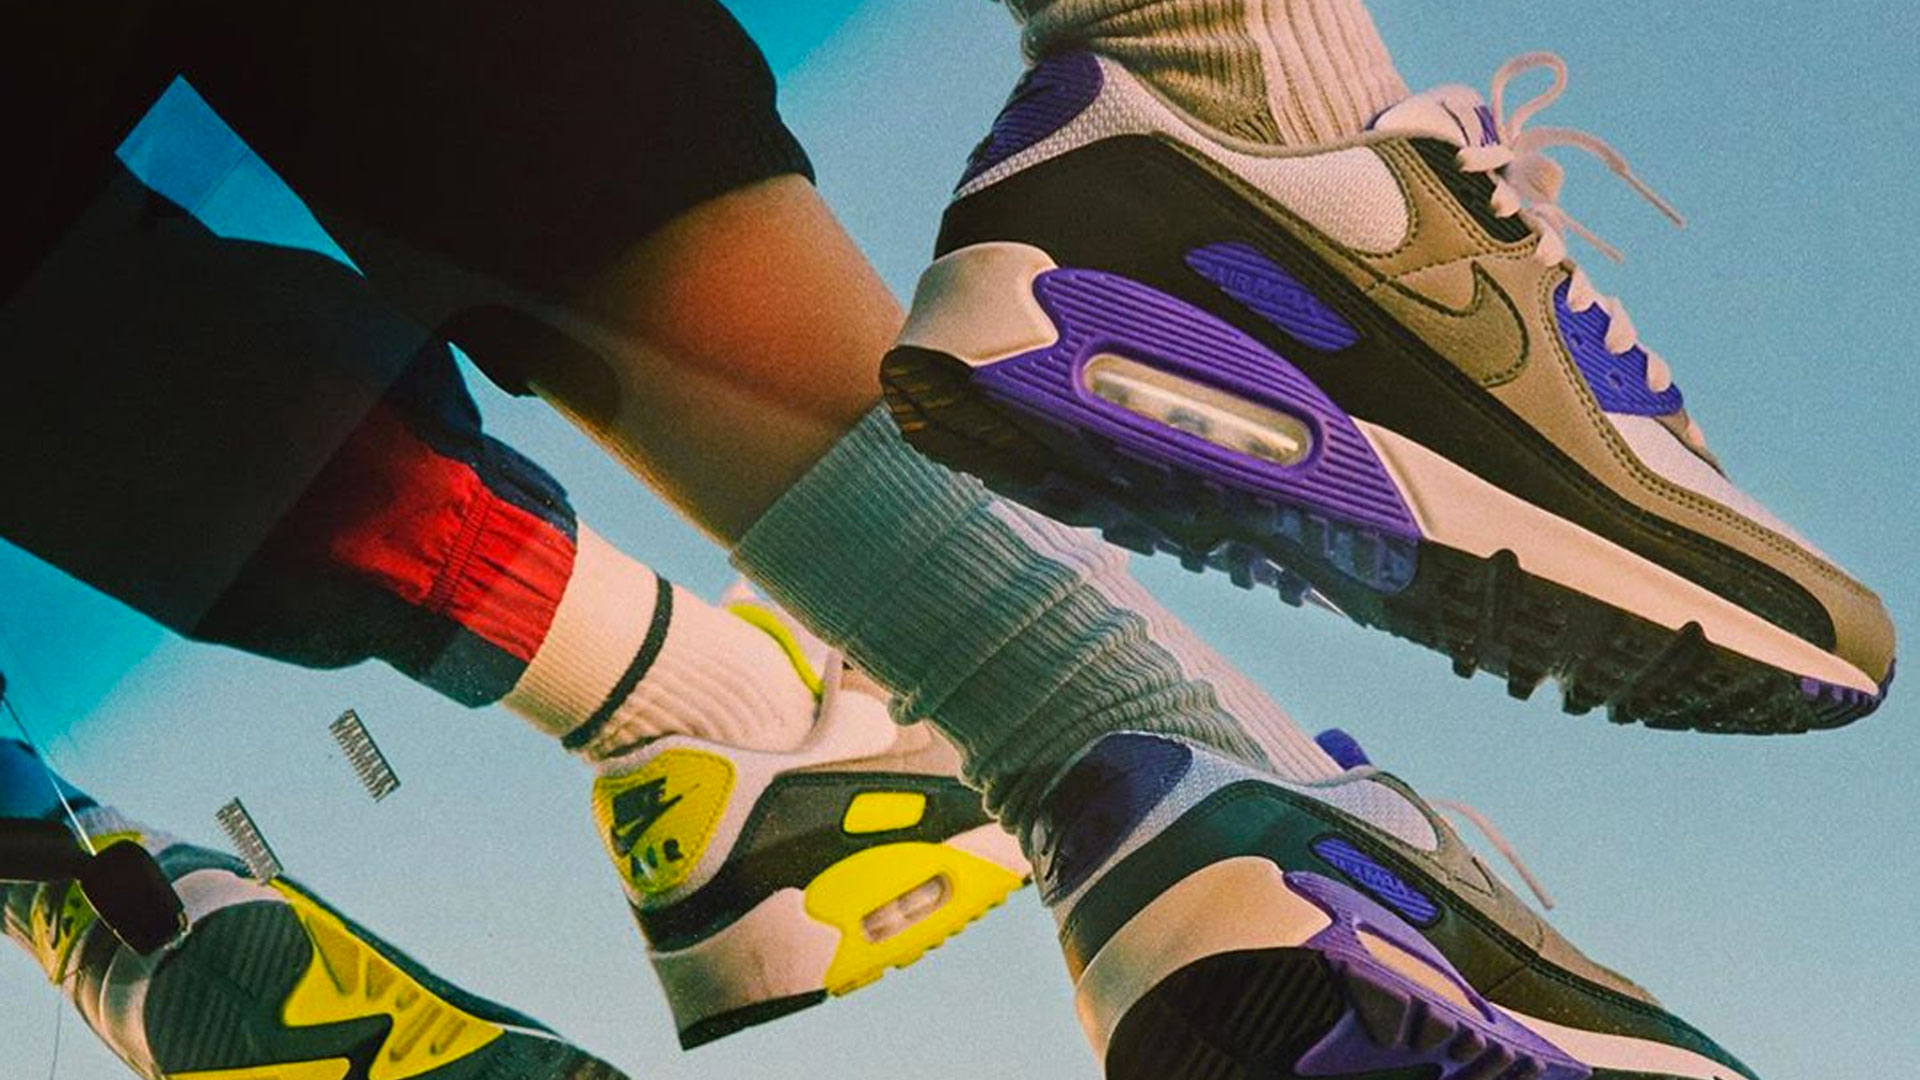 Nike Air Max 90 - January 2020 Colorways (Slider)